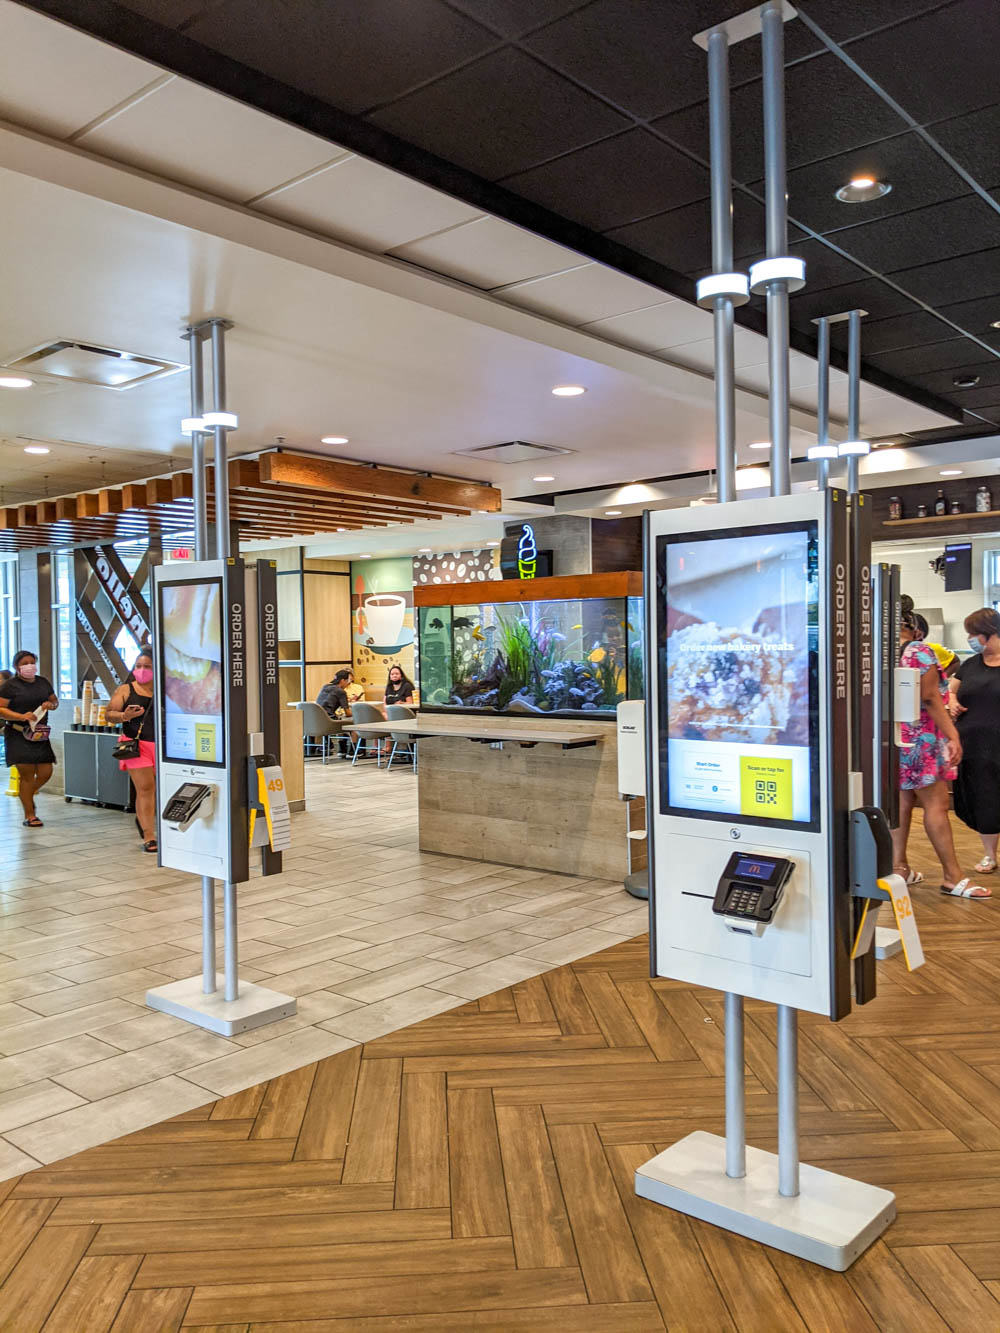 World's largest McDonalds restaurant fish aquarium | The Best Things to Do in Orlando Besides Theme Parks: Orlando, Florida for adults